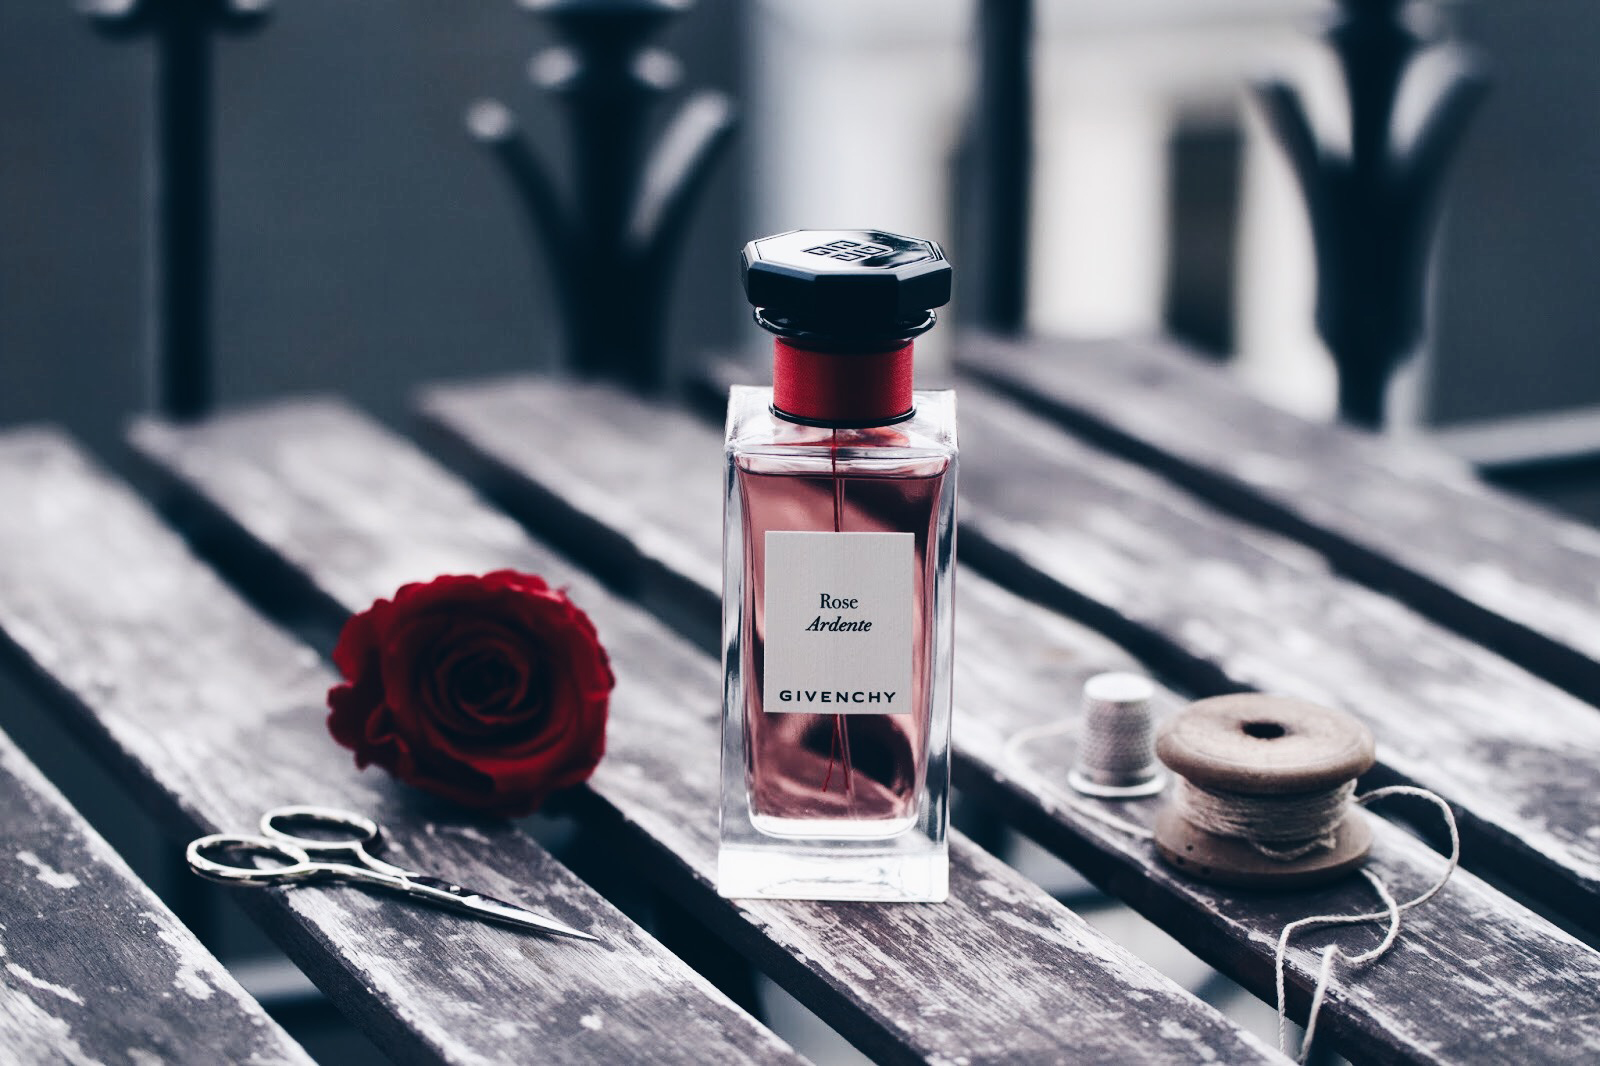 l'atelier givenchy rose ardente parfum avis test critique